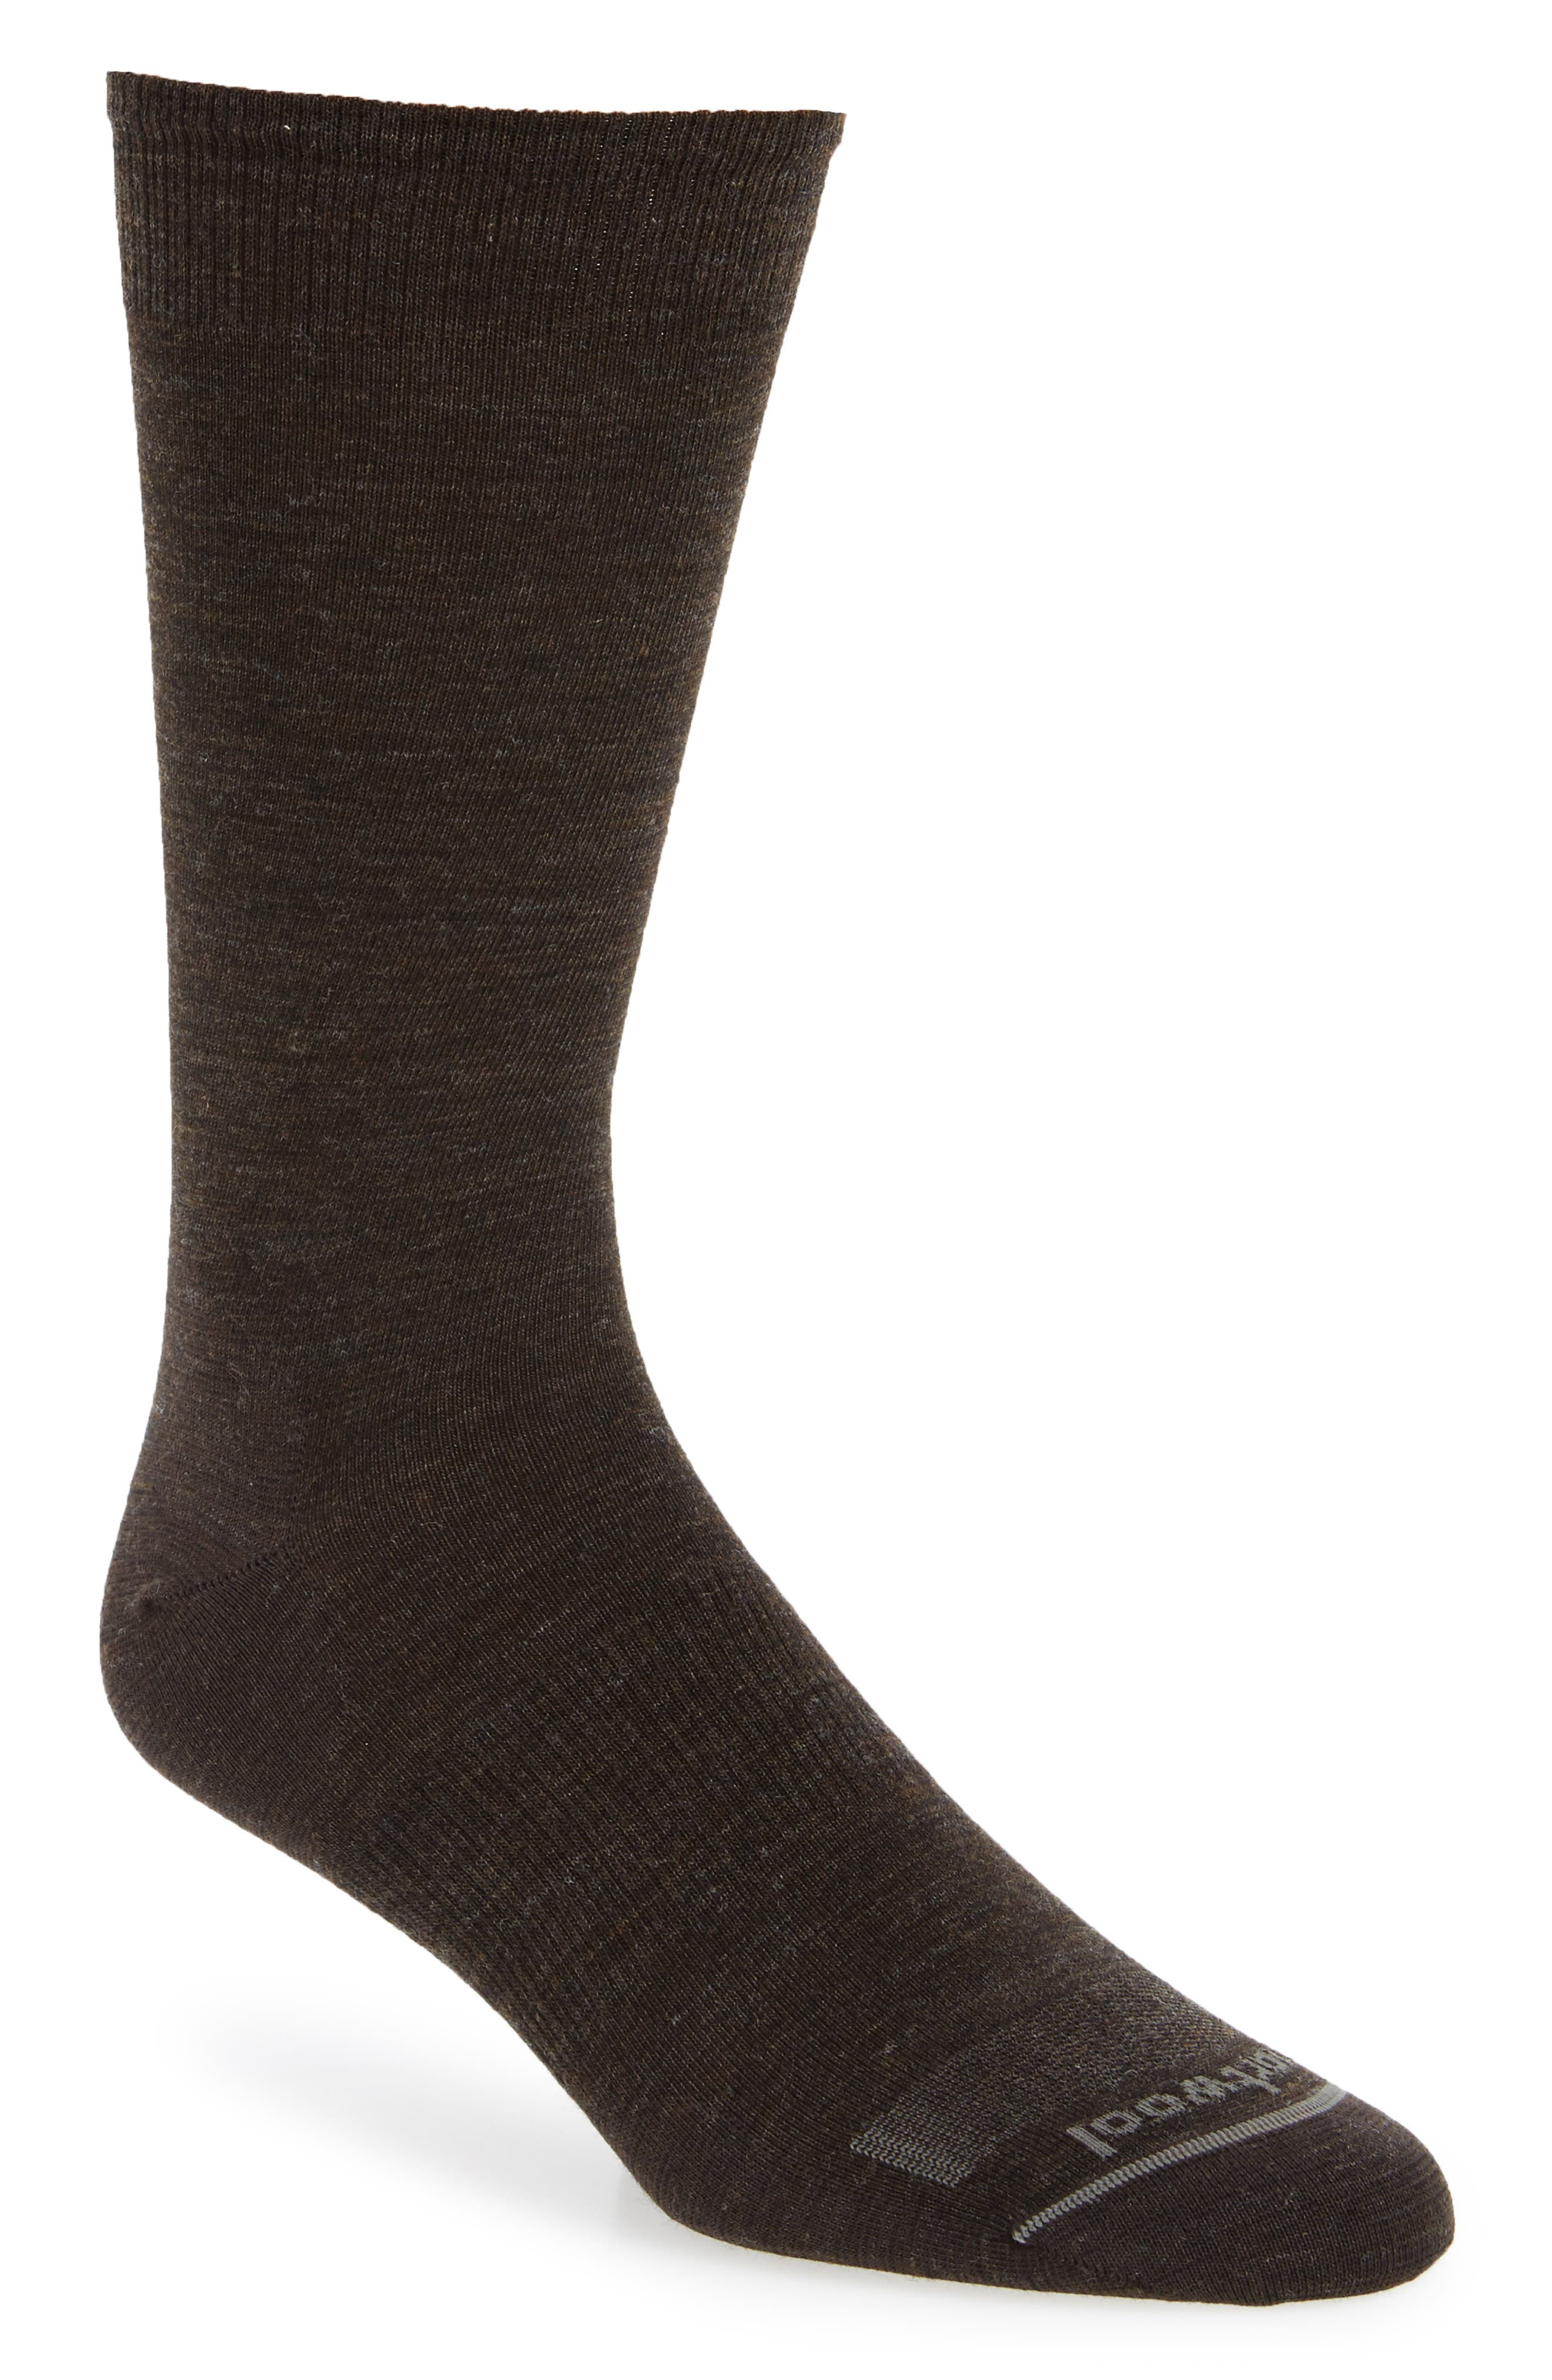 Smartwool 'Anchor Line' Merino Wool Blend Socks